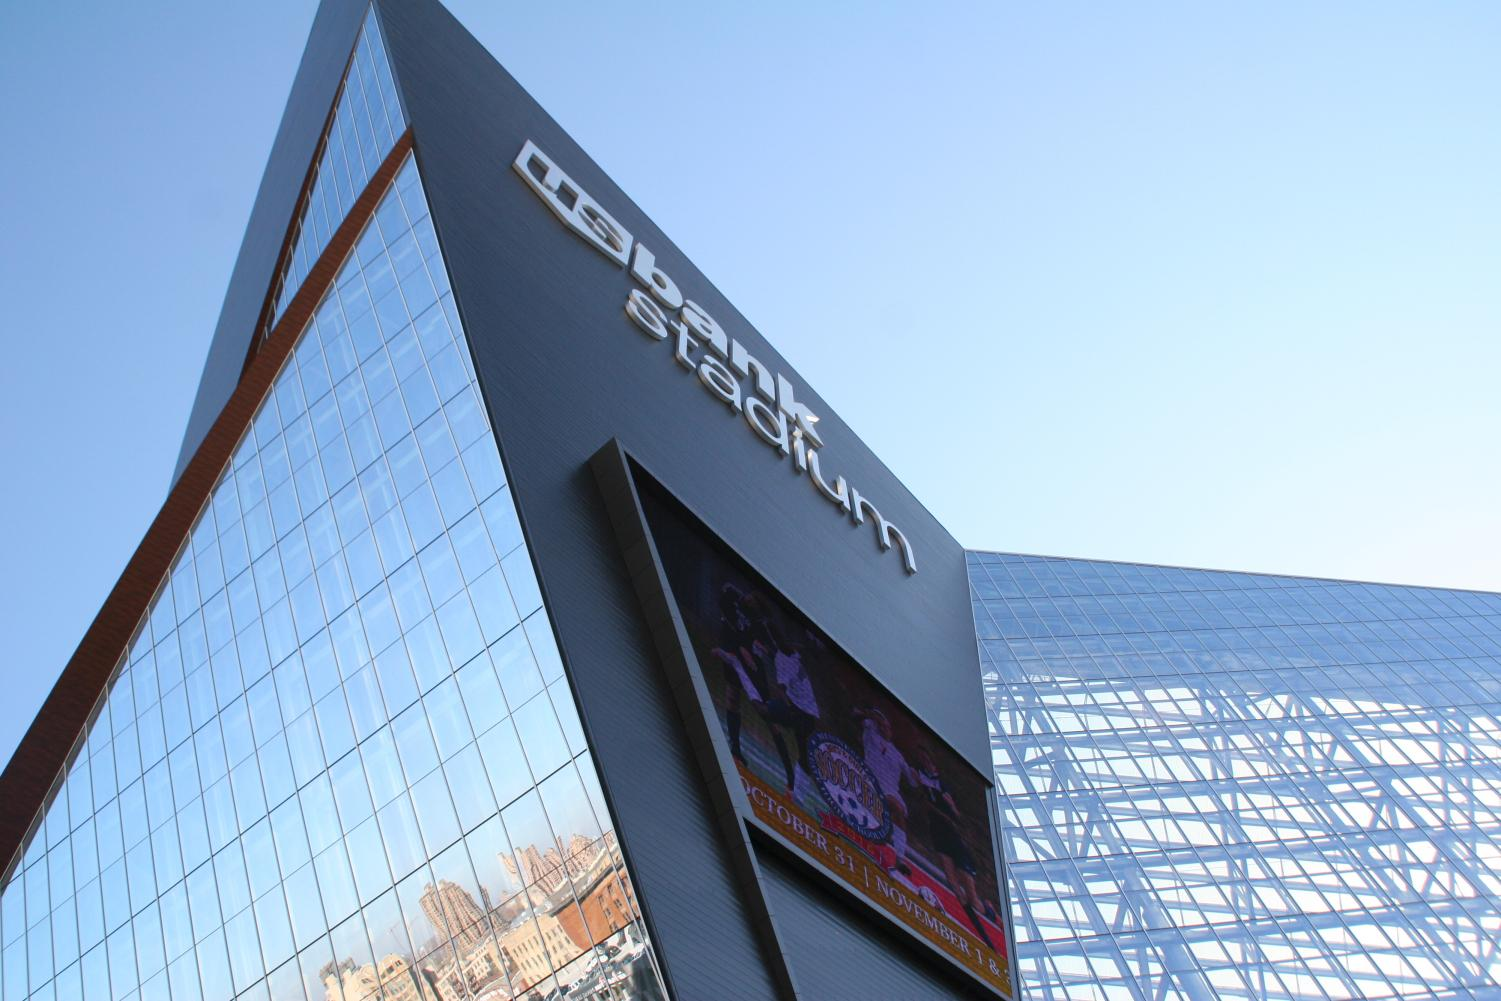 The US Bank Stadium hosted the 2018 Super Bowl.